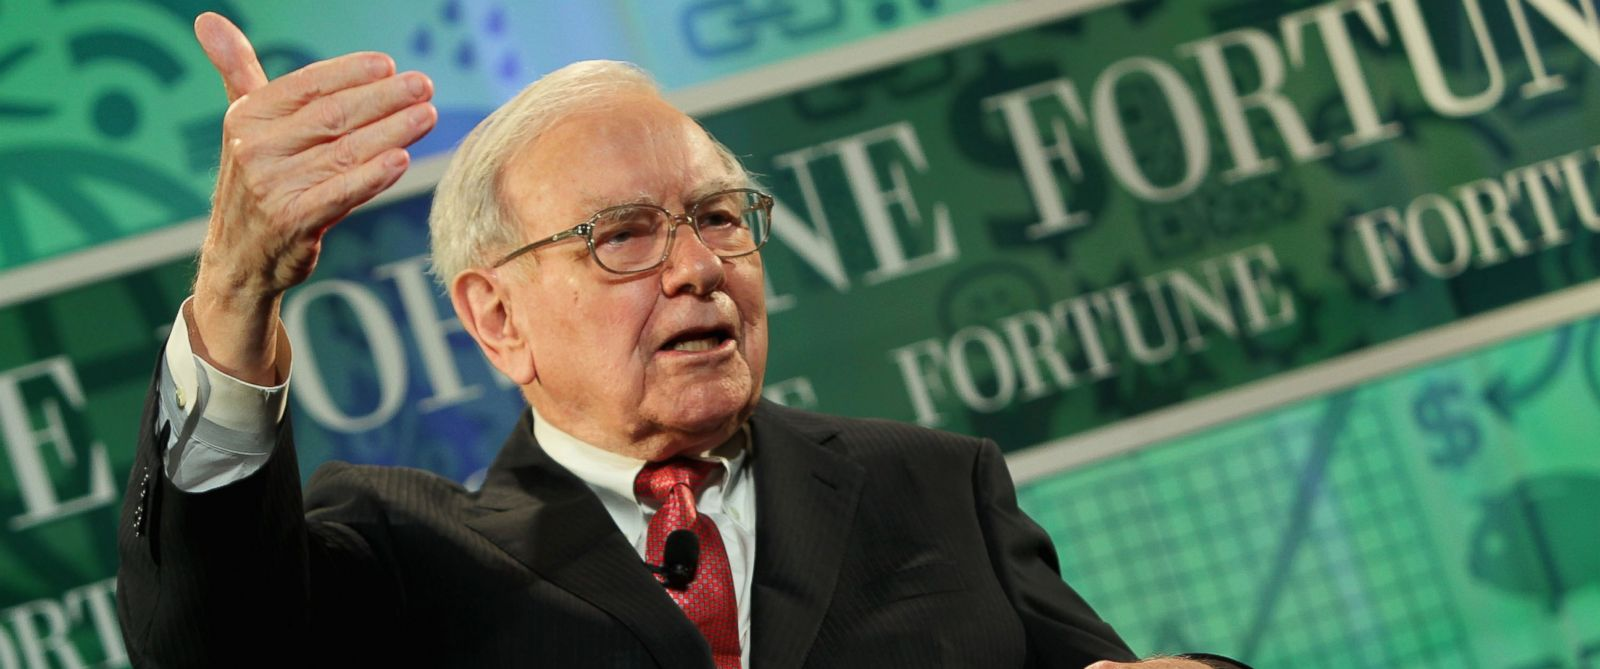 PHOTO: Warren Buffett is pictured on Oct. 16, 2013 in Washington, D.C.